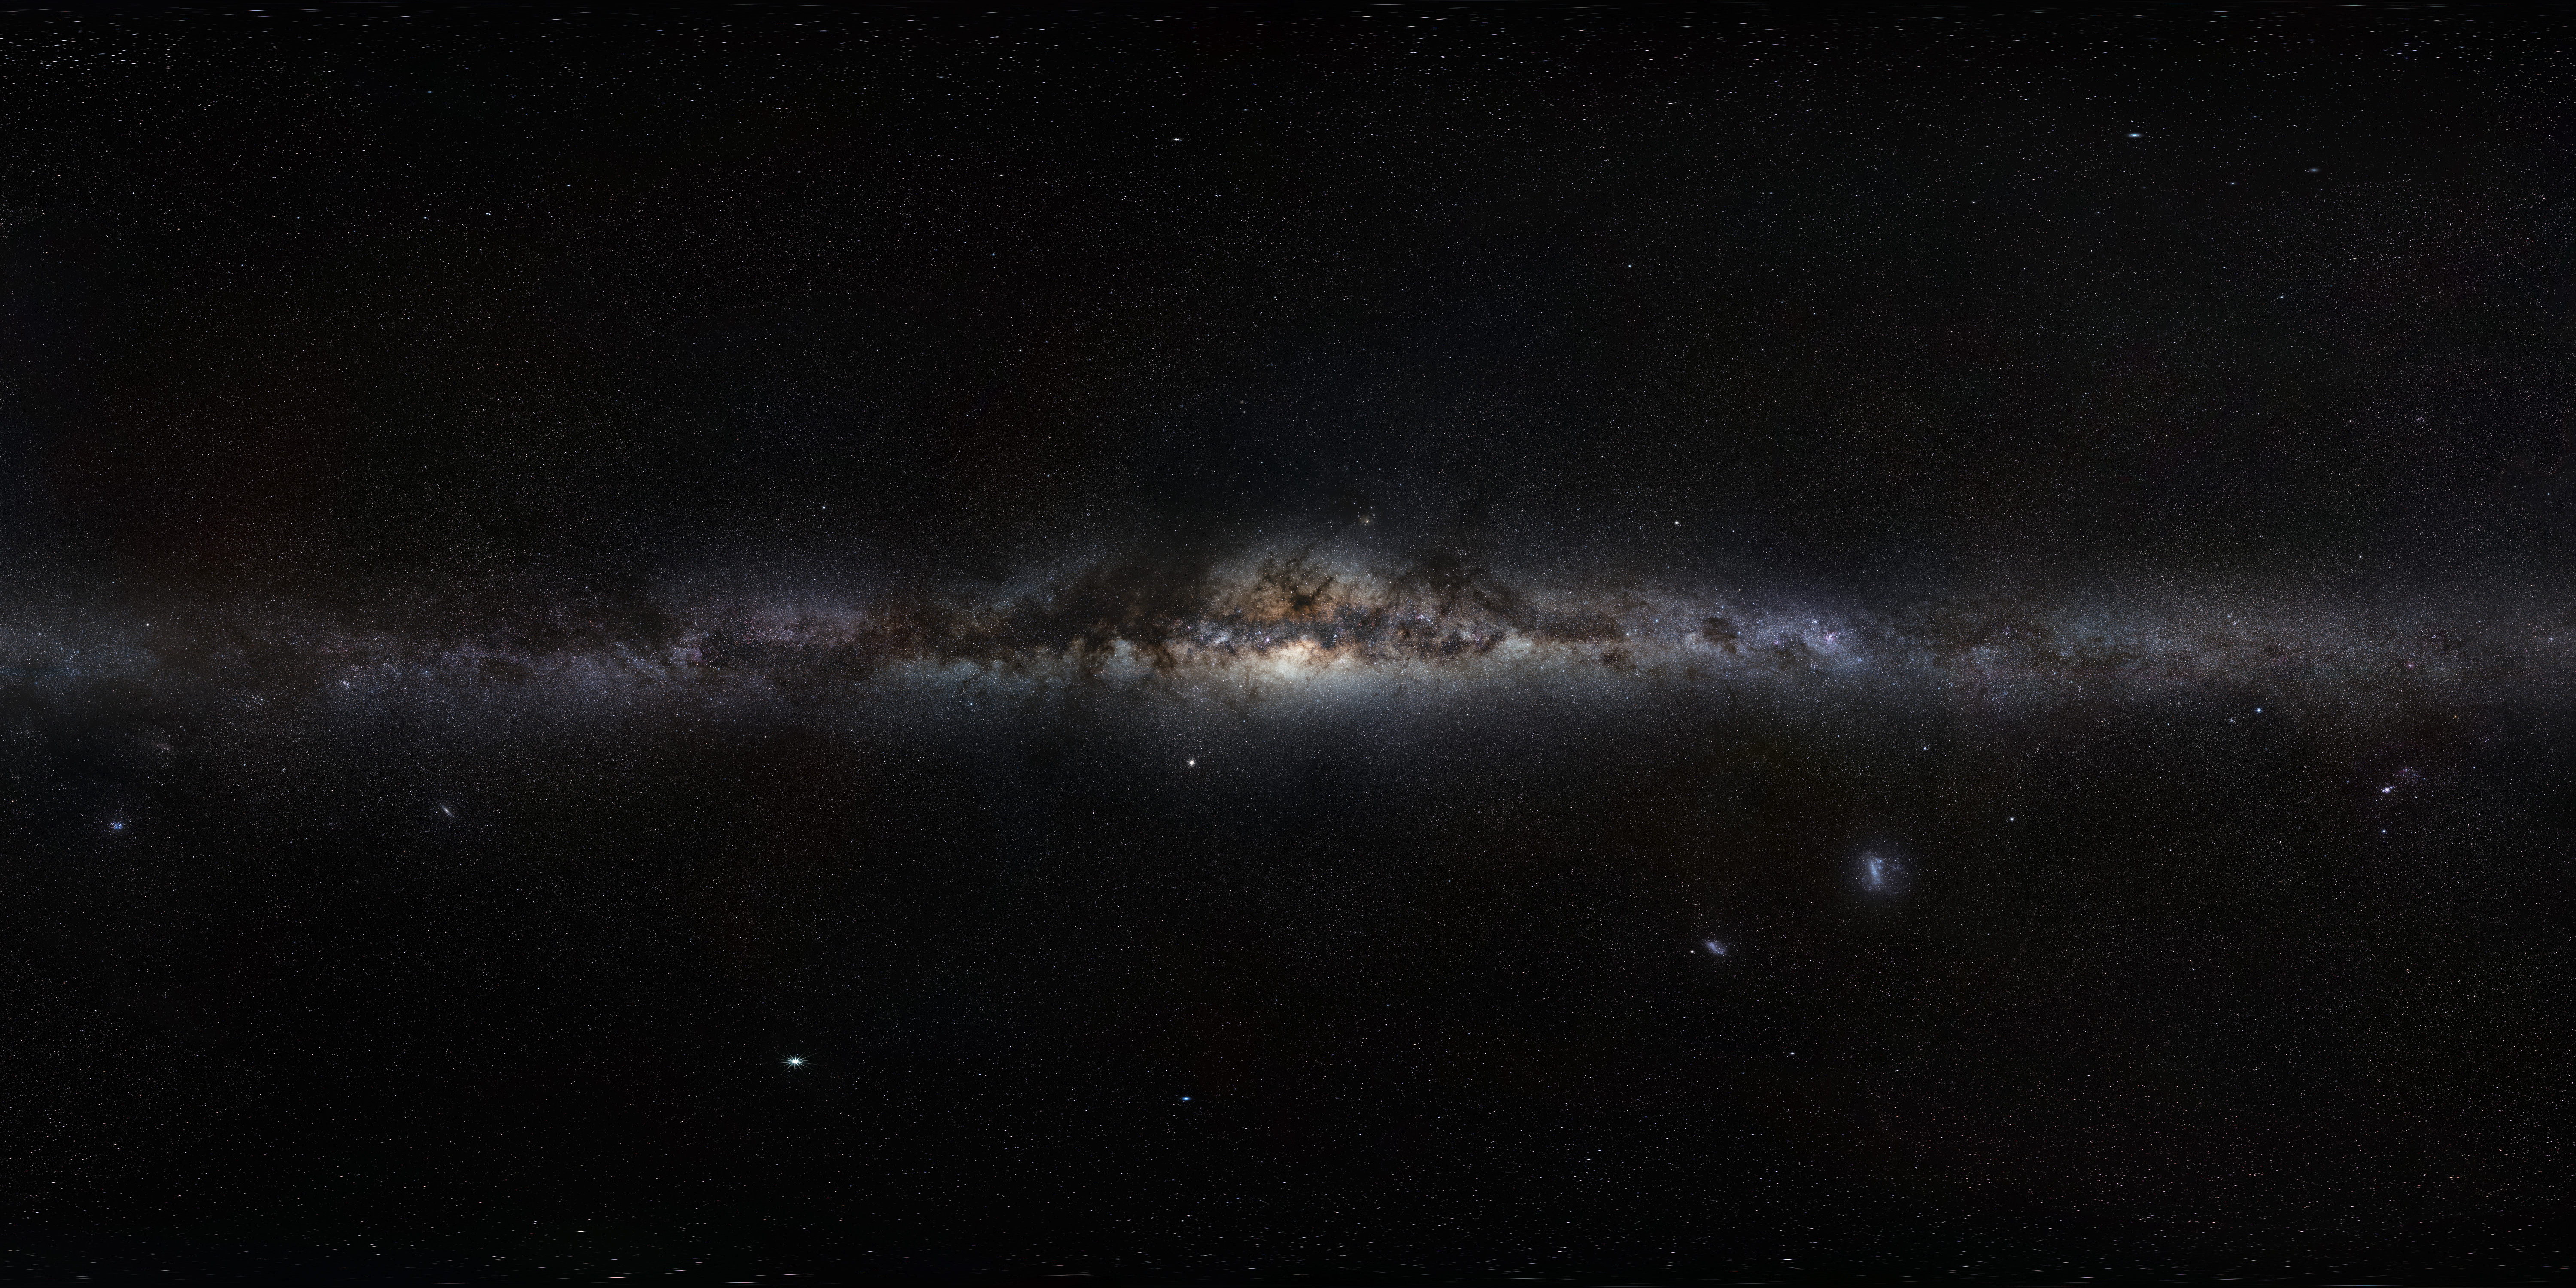 The Milky Way panorama from the European Southern Observatory